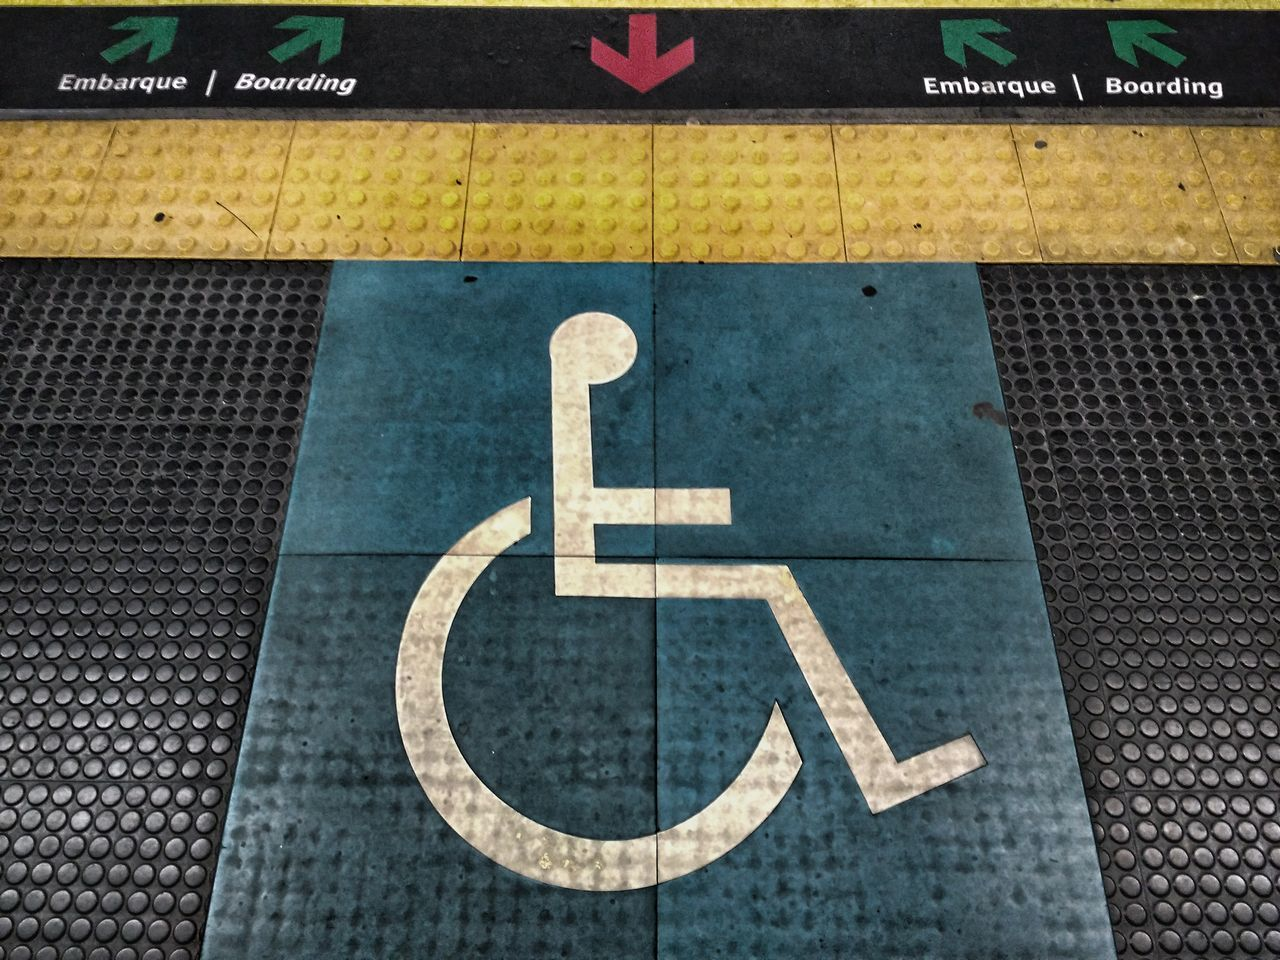 Disabled Access Disabled Sign Wheelchair Communication Guidance Transportation Wheelchair Access Close-up Differing Abilities Disabled Access Differing Abilities Mind The Gap Brazilian Symbol Metro Subway Station Platform Close Up Underground Signs Markings Third World Country Developing Country Looking Down